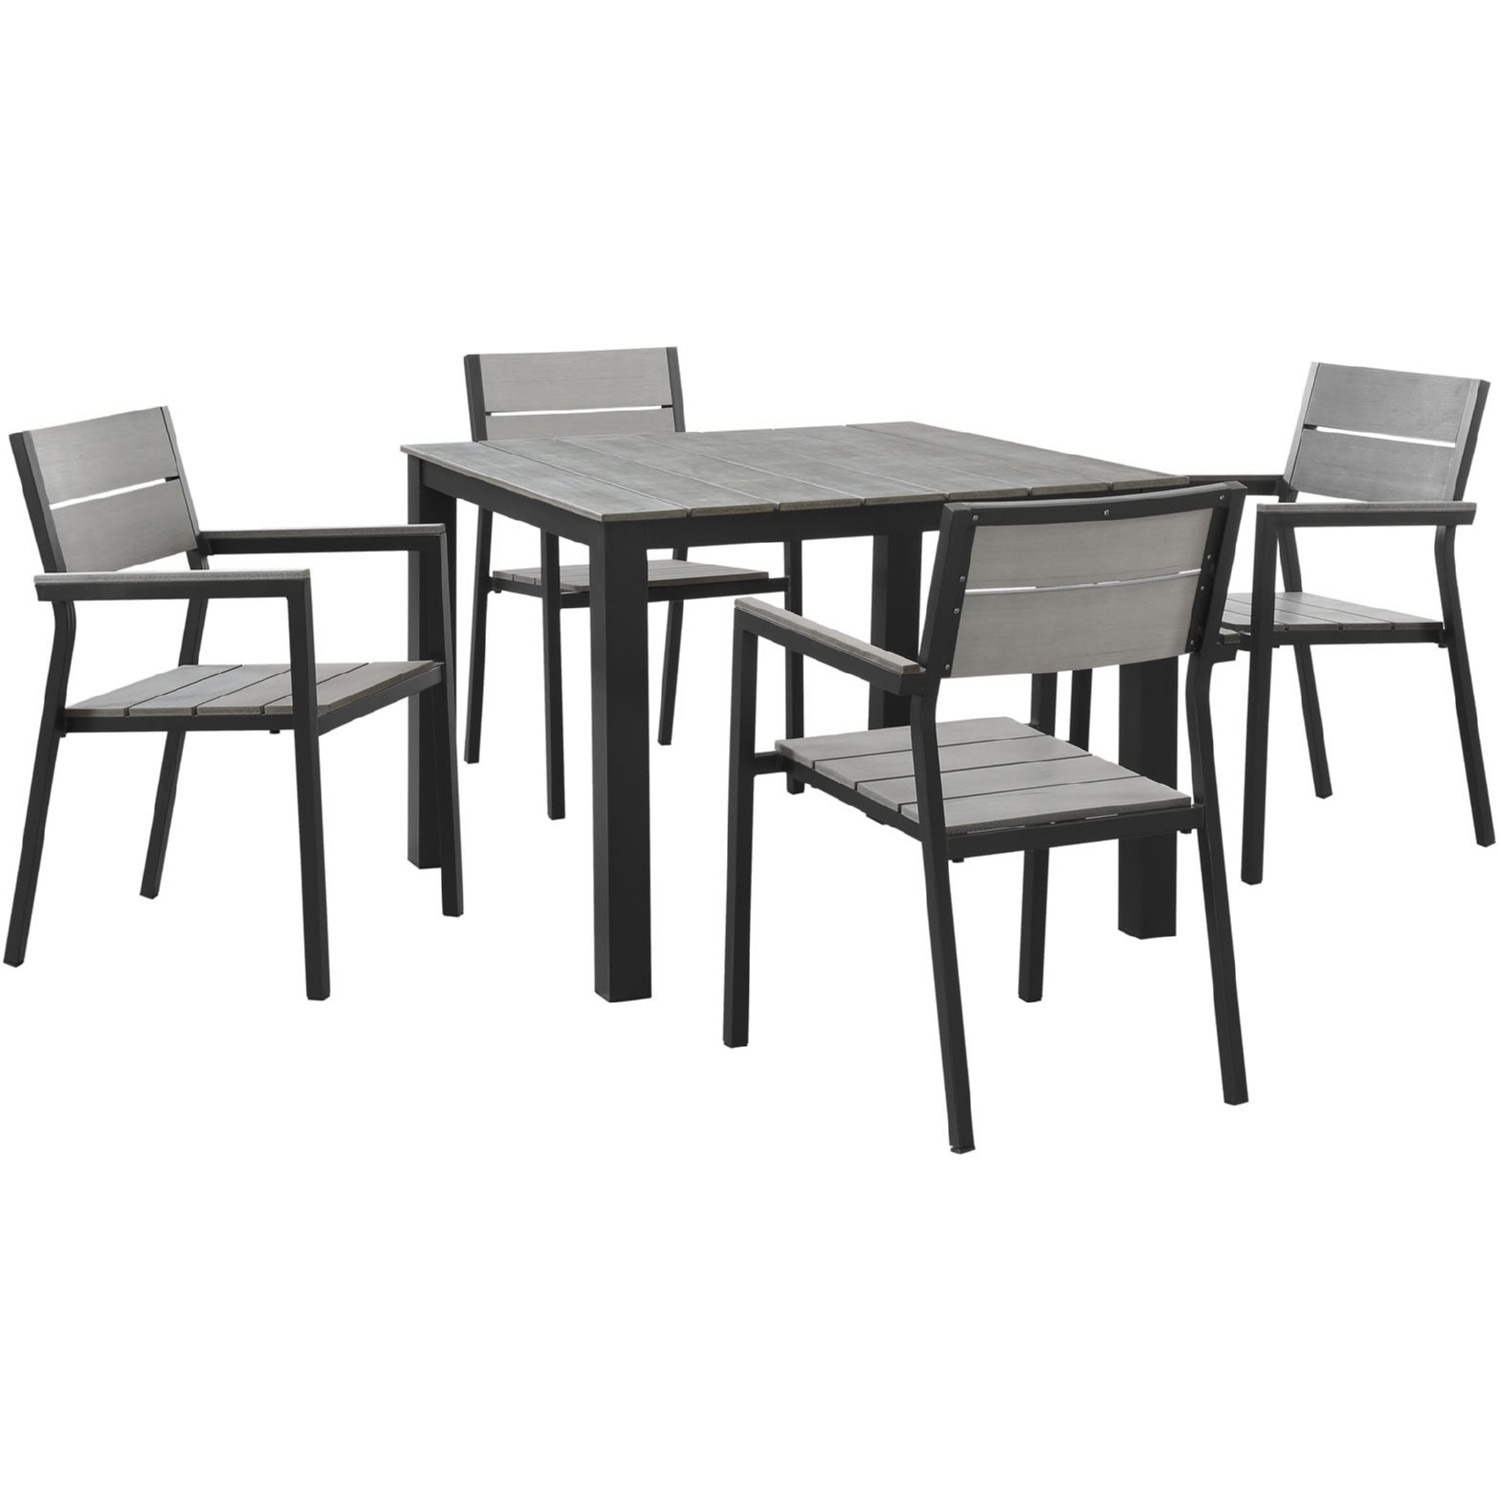 Modern 5-Piece Dining Set In Gray Frame Finish - image-0